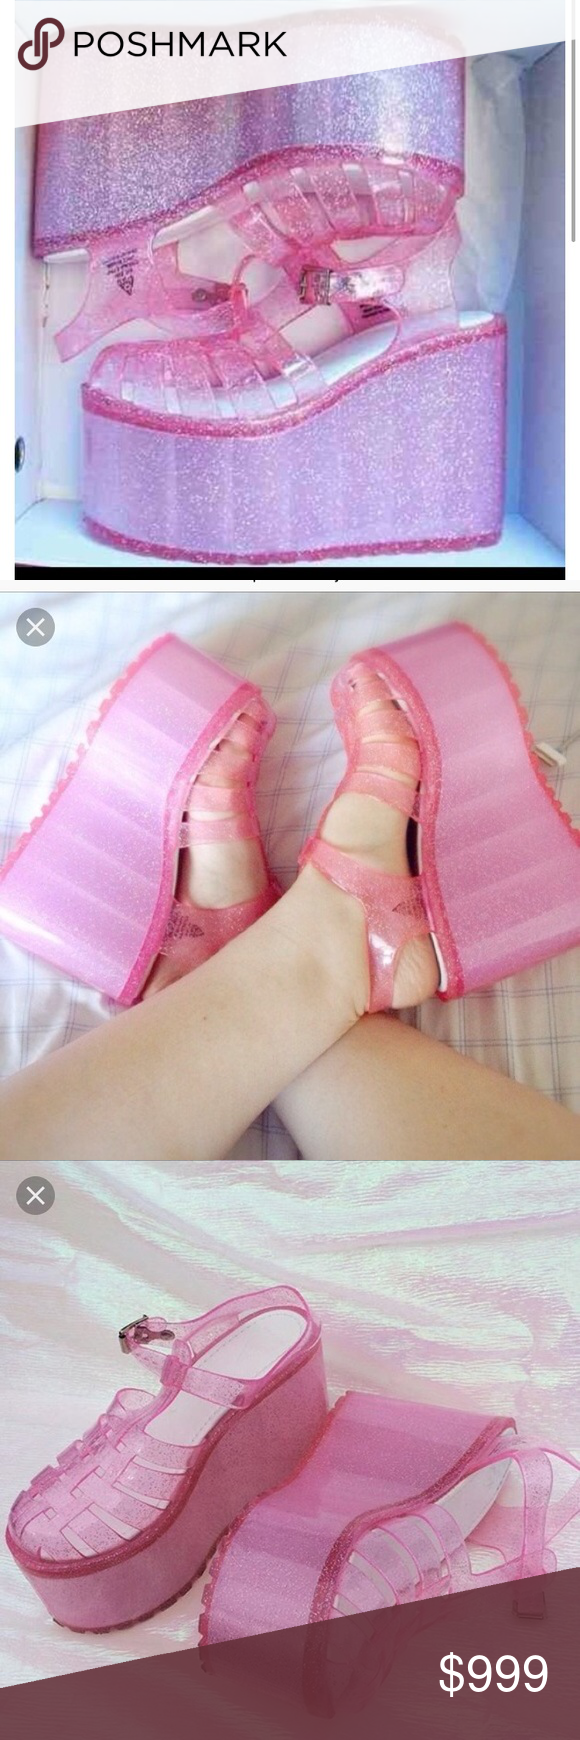 cce92052c9e2 ISO UNIF HELLA JELLIES PINK I m lookin for the UNIF Hella Jellies in pink